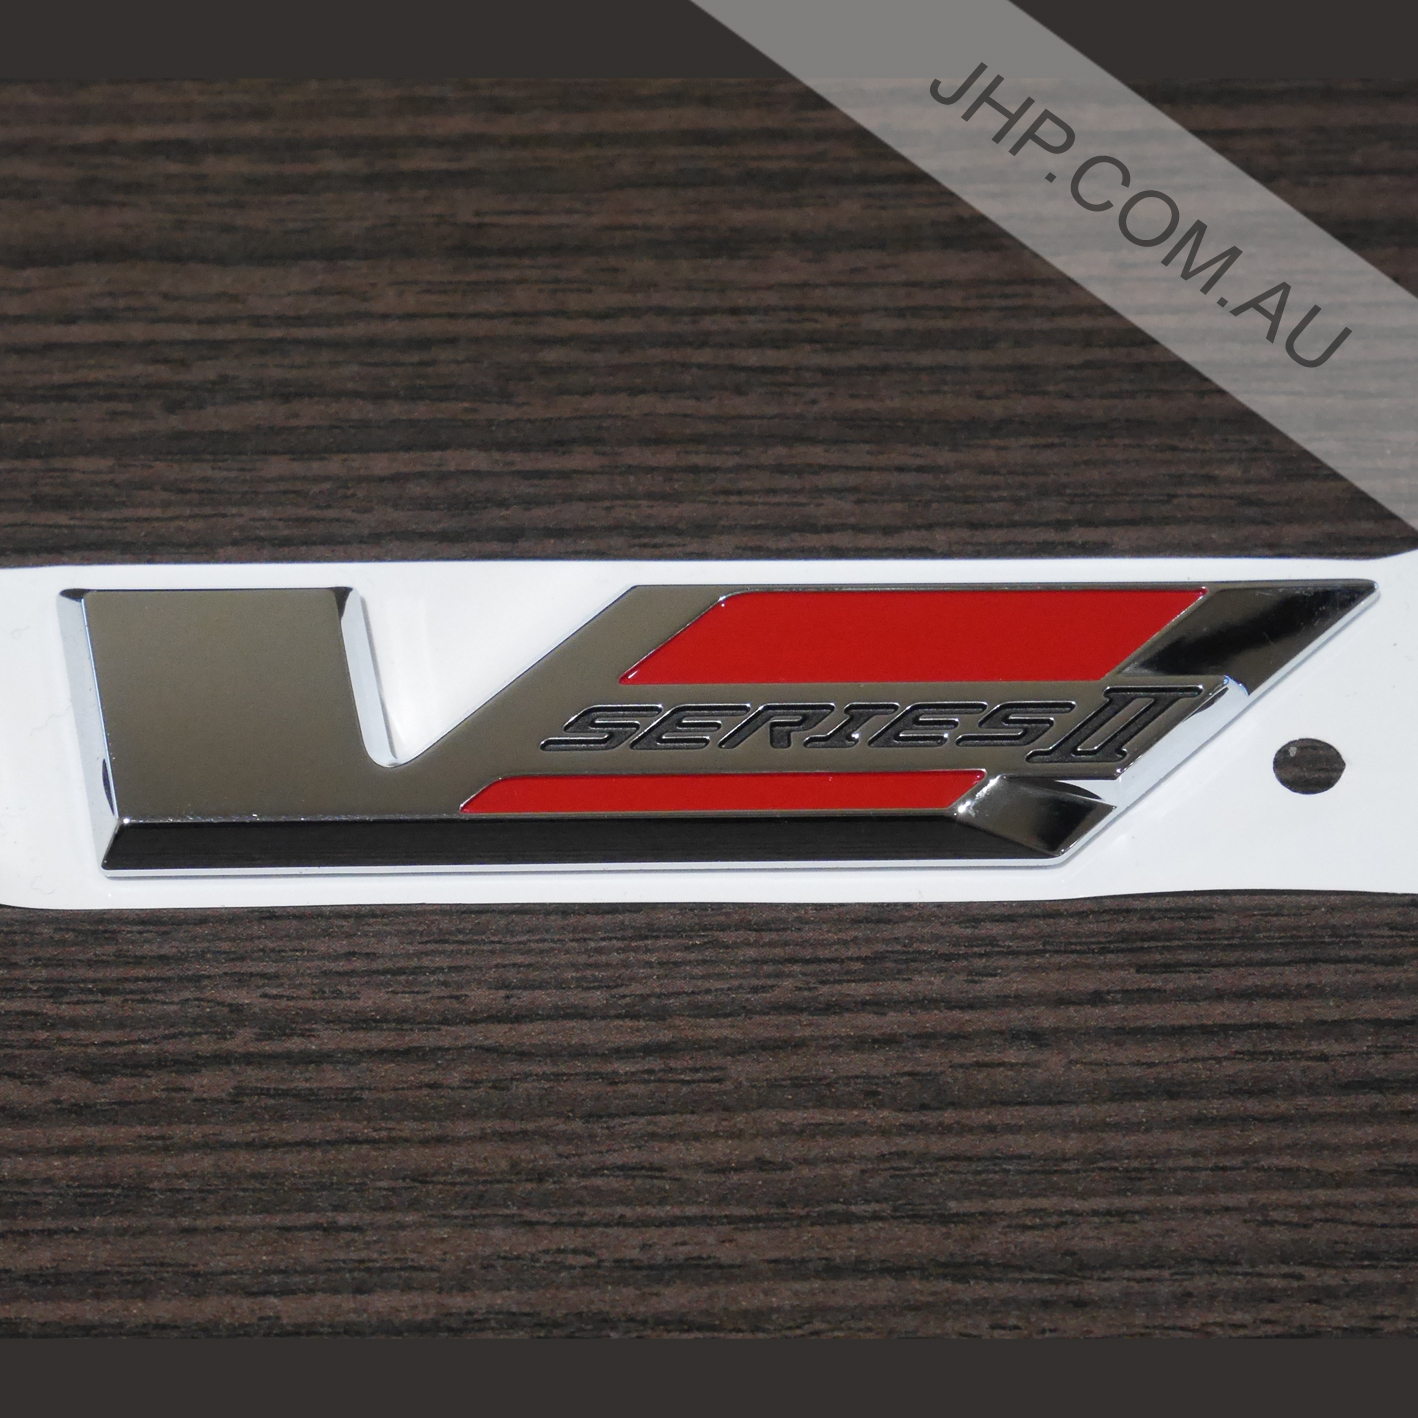 Chevy Ss Holden Commodore V Badge Jhp Vehicle Enhancements